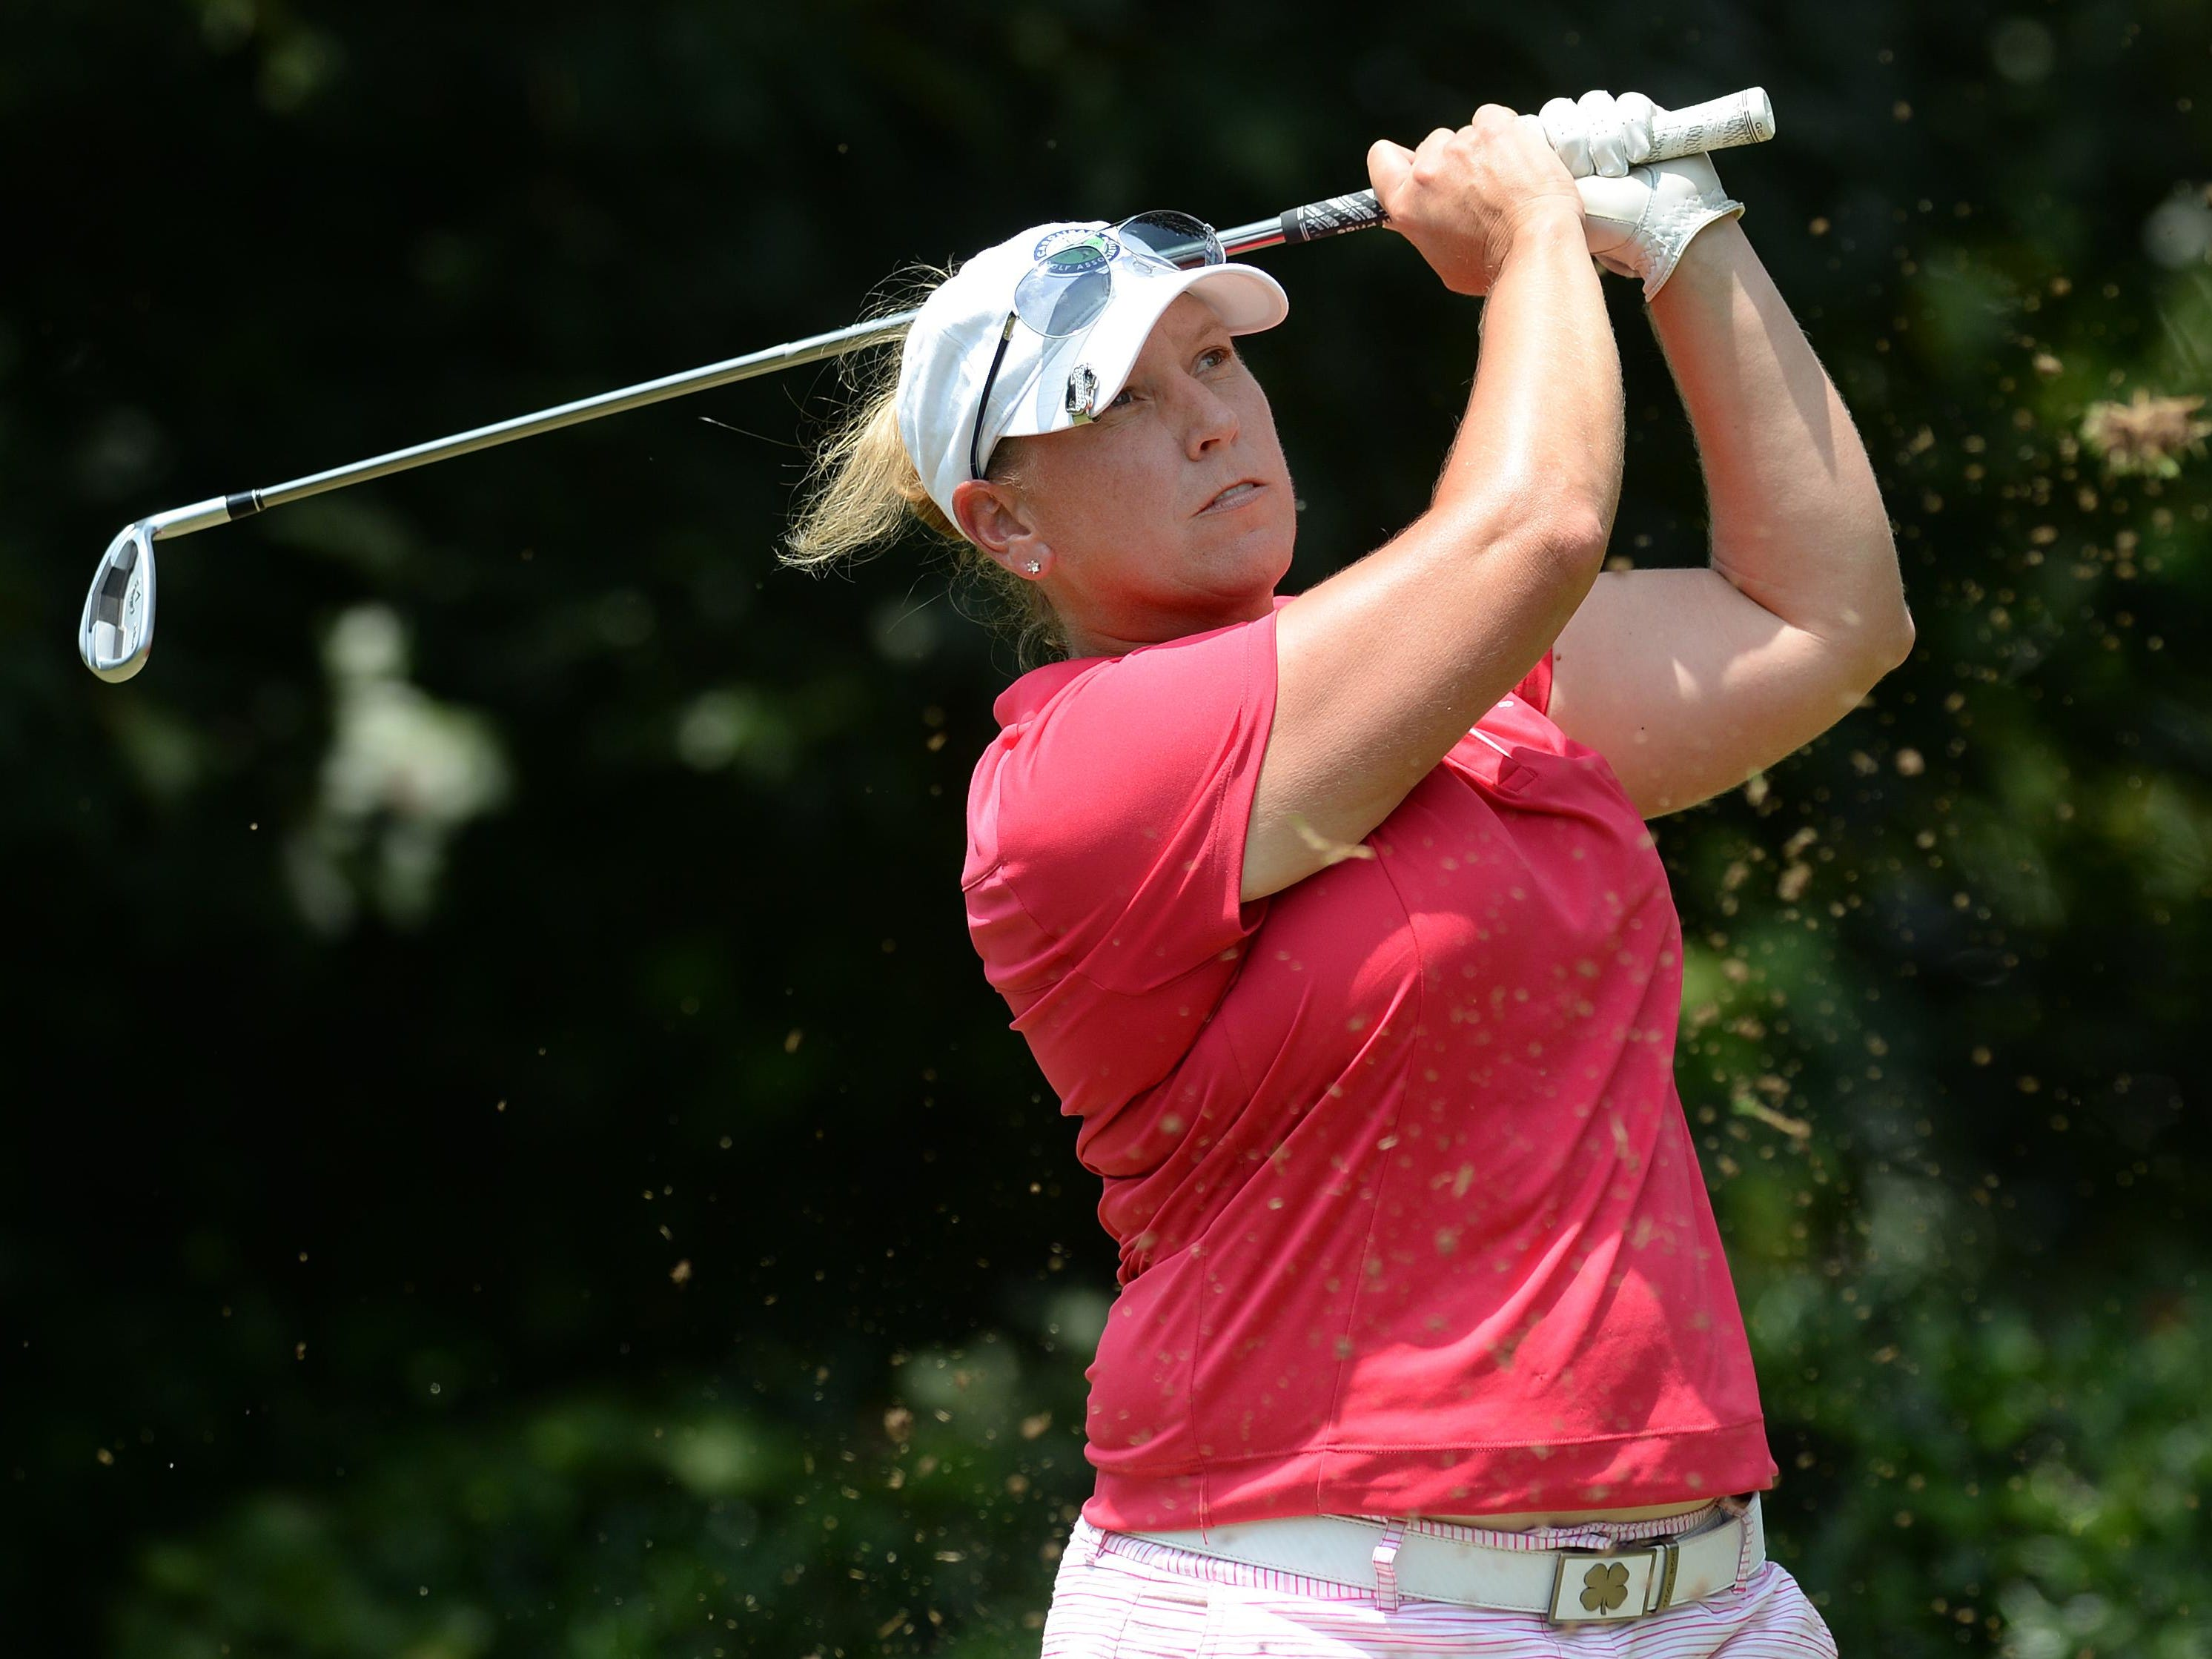 While recording a strong summer on the golf course, Simpsonville's Lea Venable has been on the road almost constantly to help care for two family members who recently experienced medical emergencies.